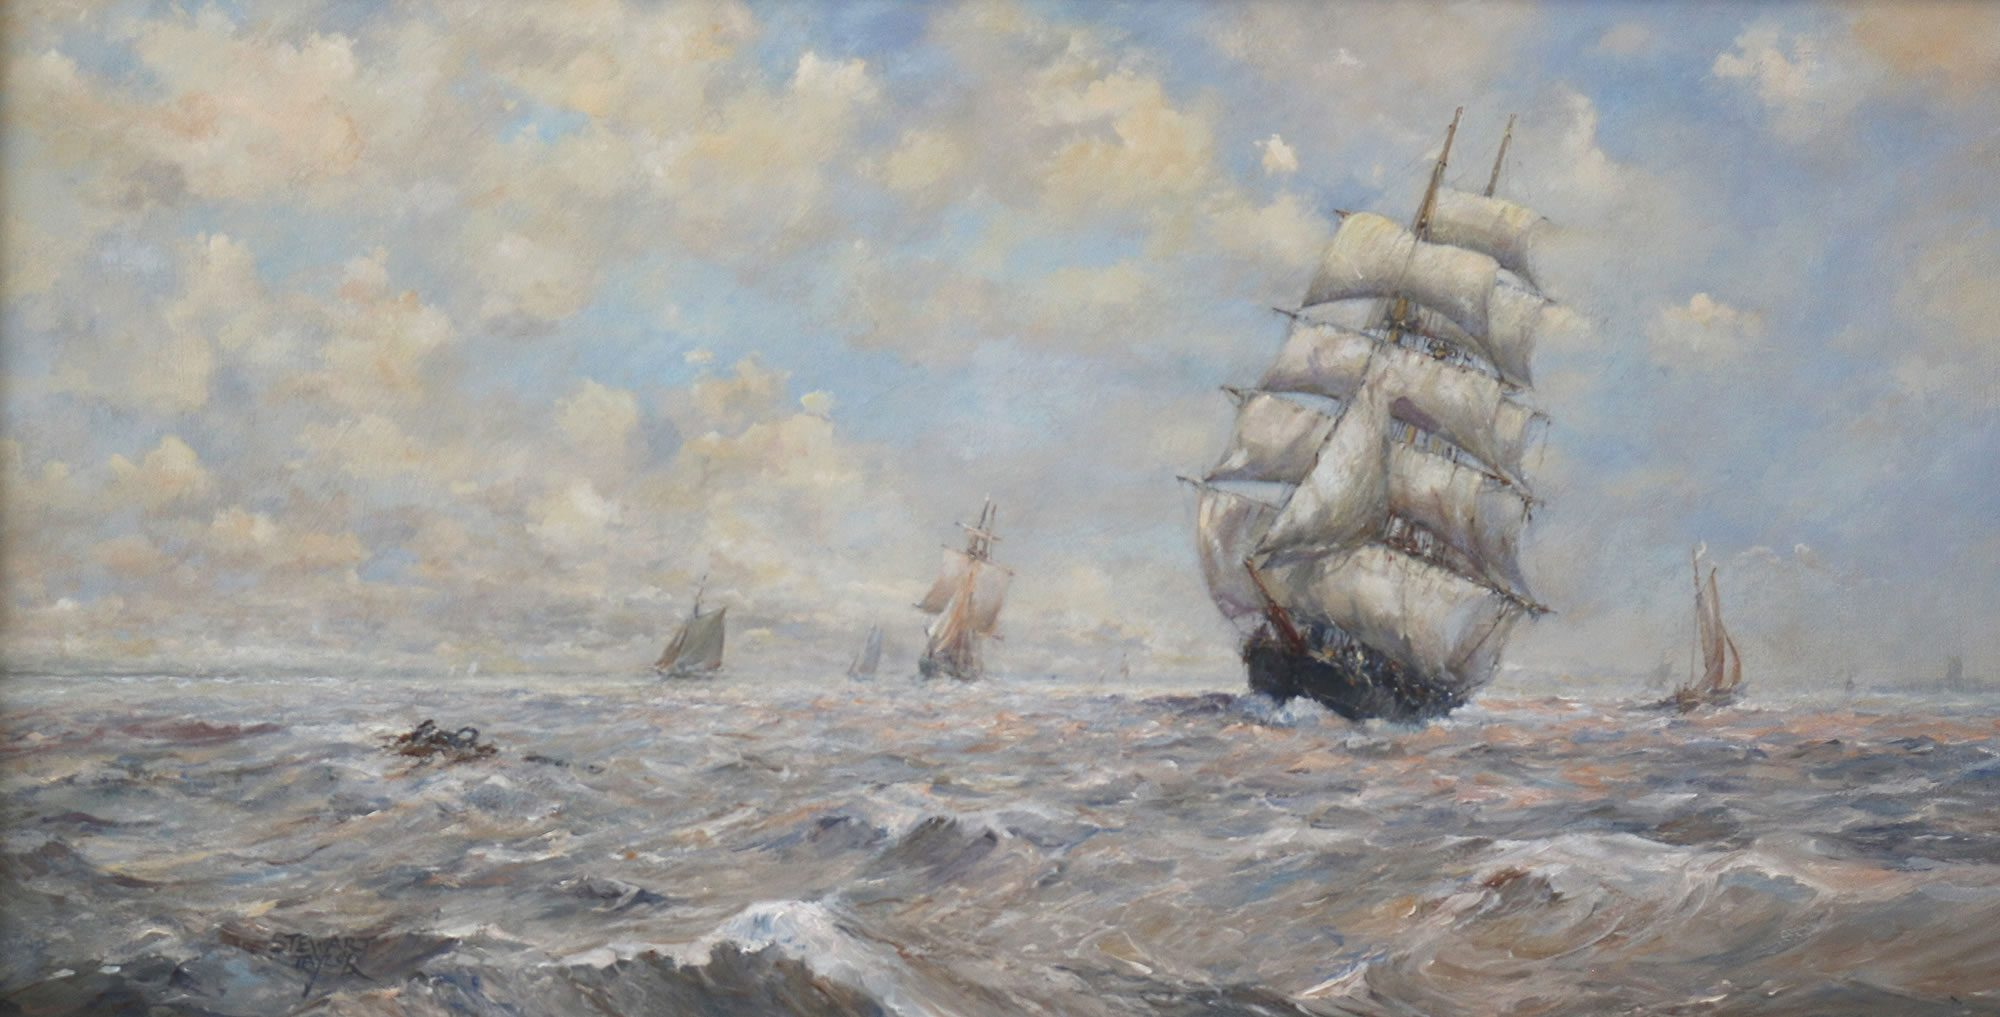 Oil painting by East Yorkshire marine artist Stewart Taylor